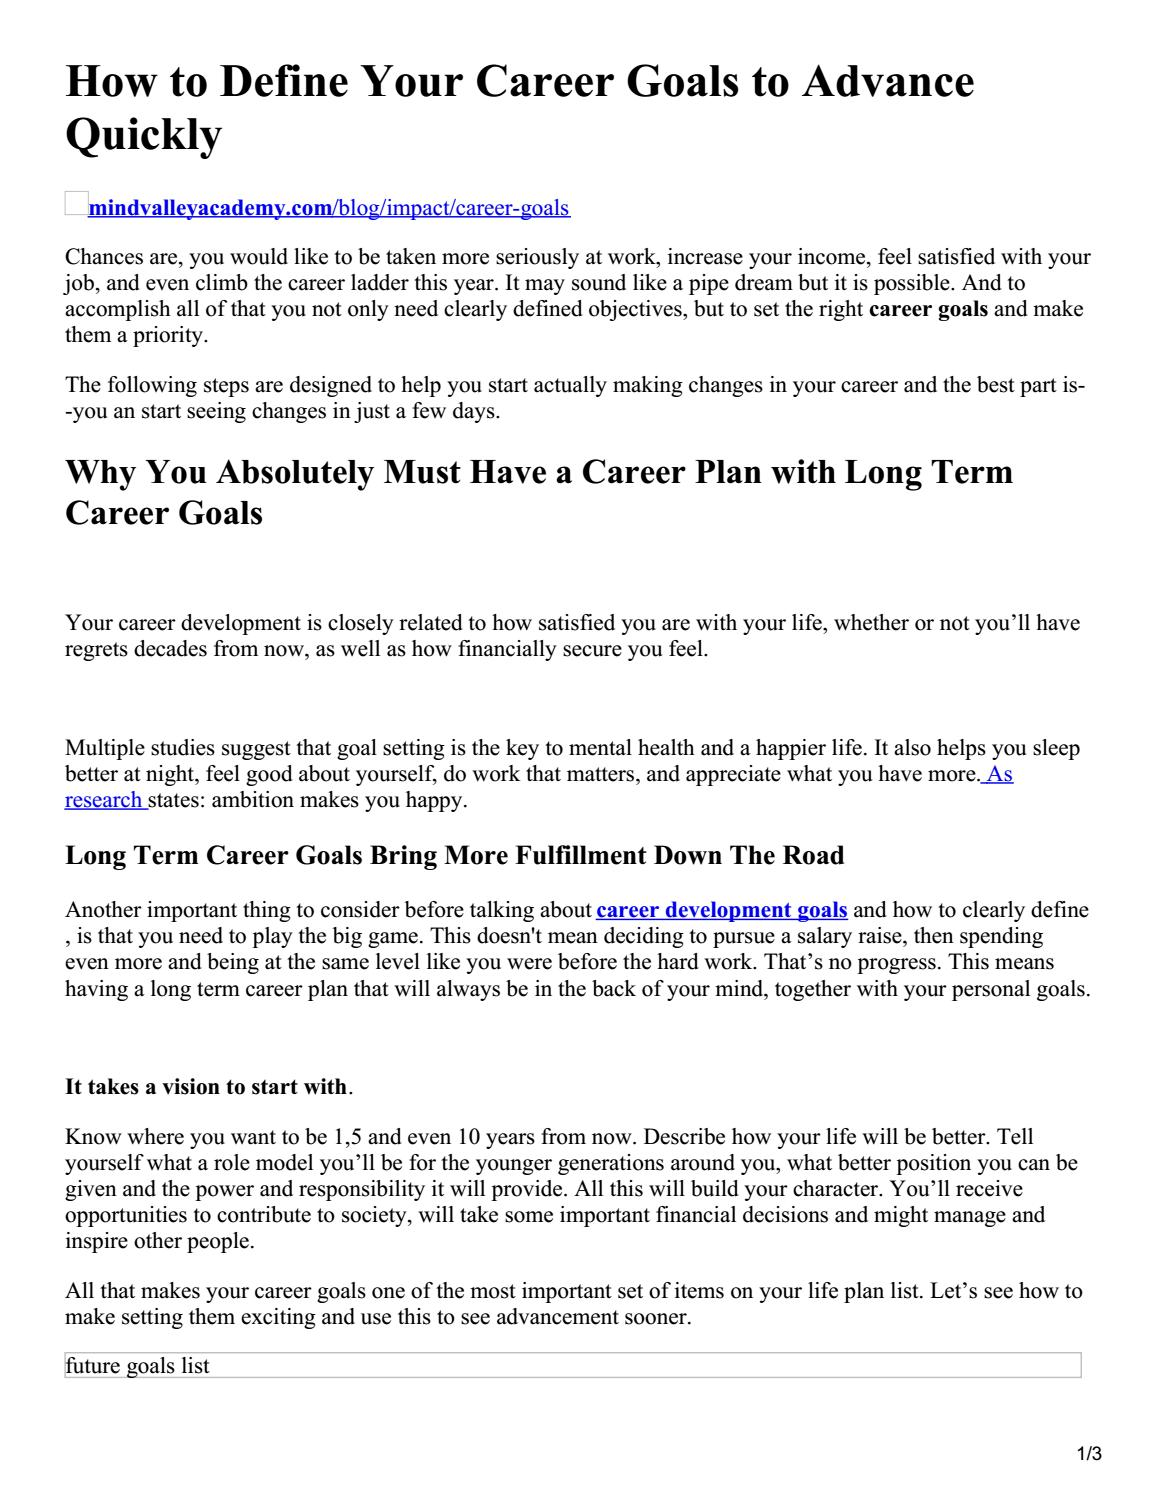 How To Define Your Career Goals To Advance Quickly By Career Objective    Issuu  What Are Your Career Goals